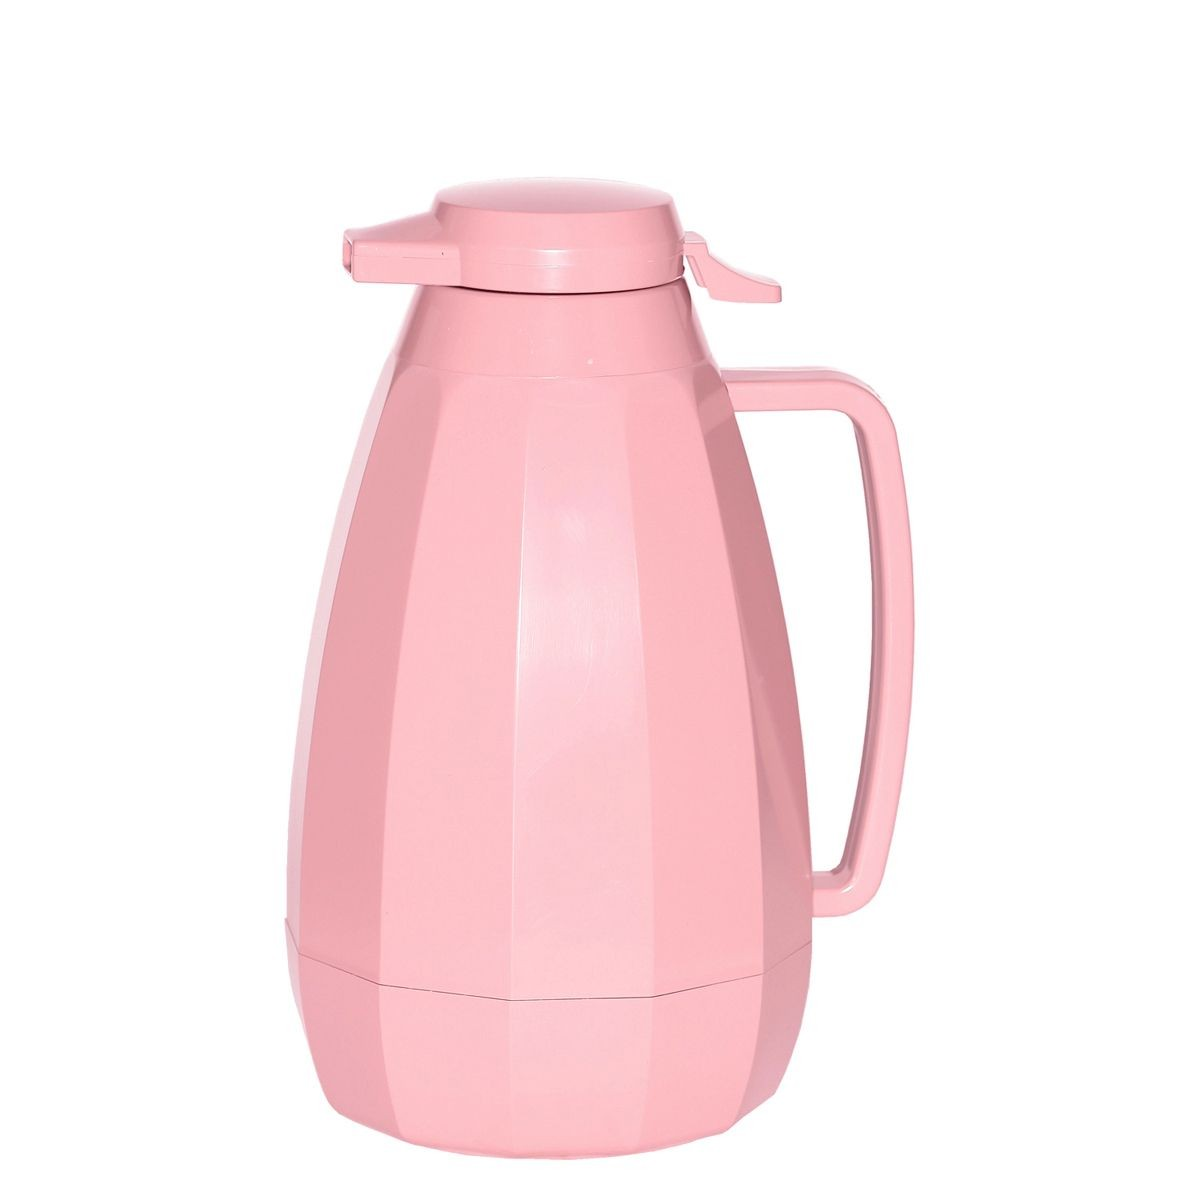 Service Ideas NG421MV New Generation Mauve Coffee Server, 2 Liter  (68 oz.)